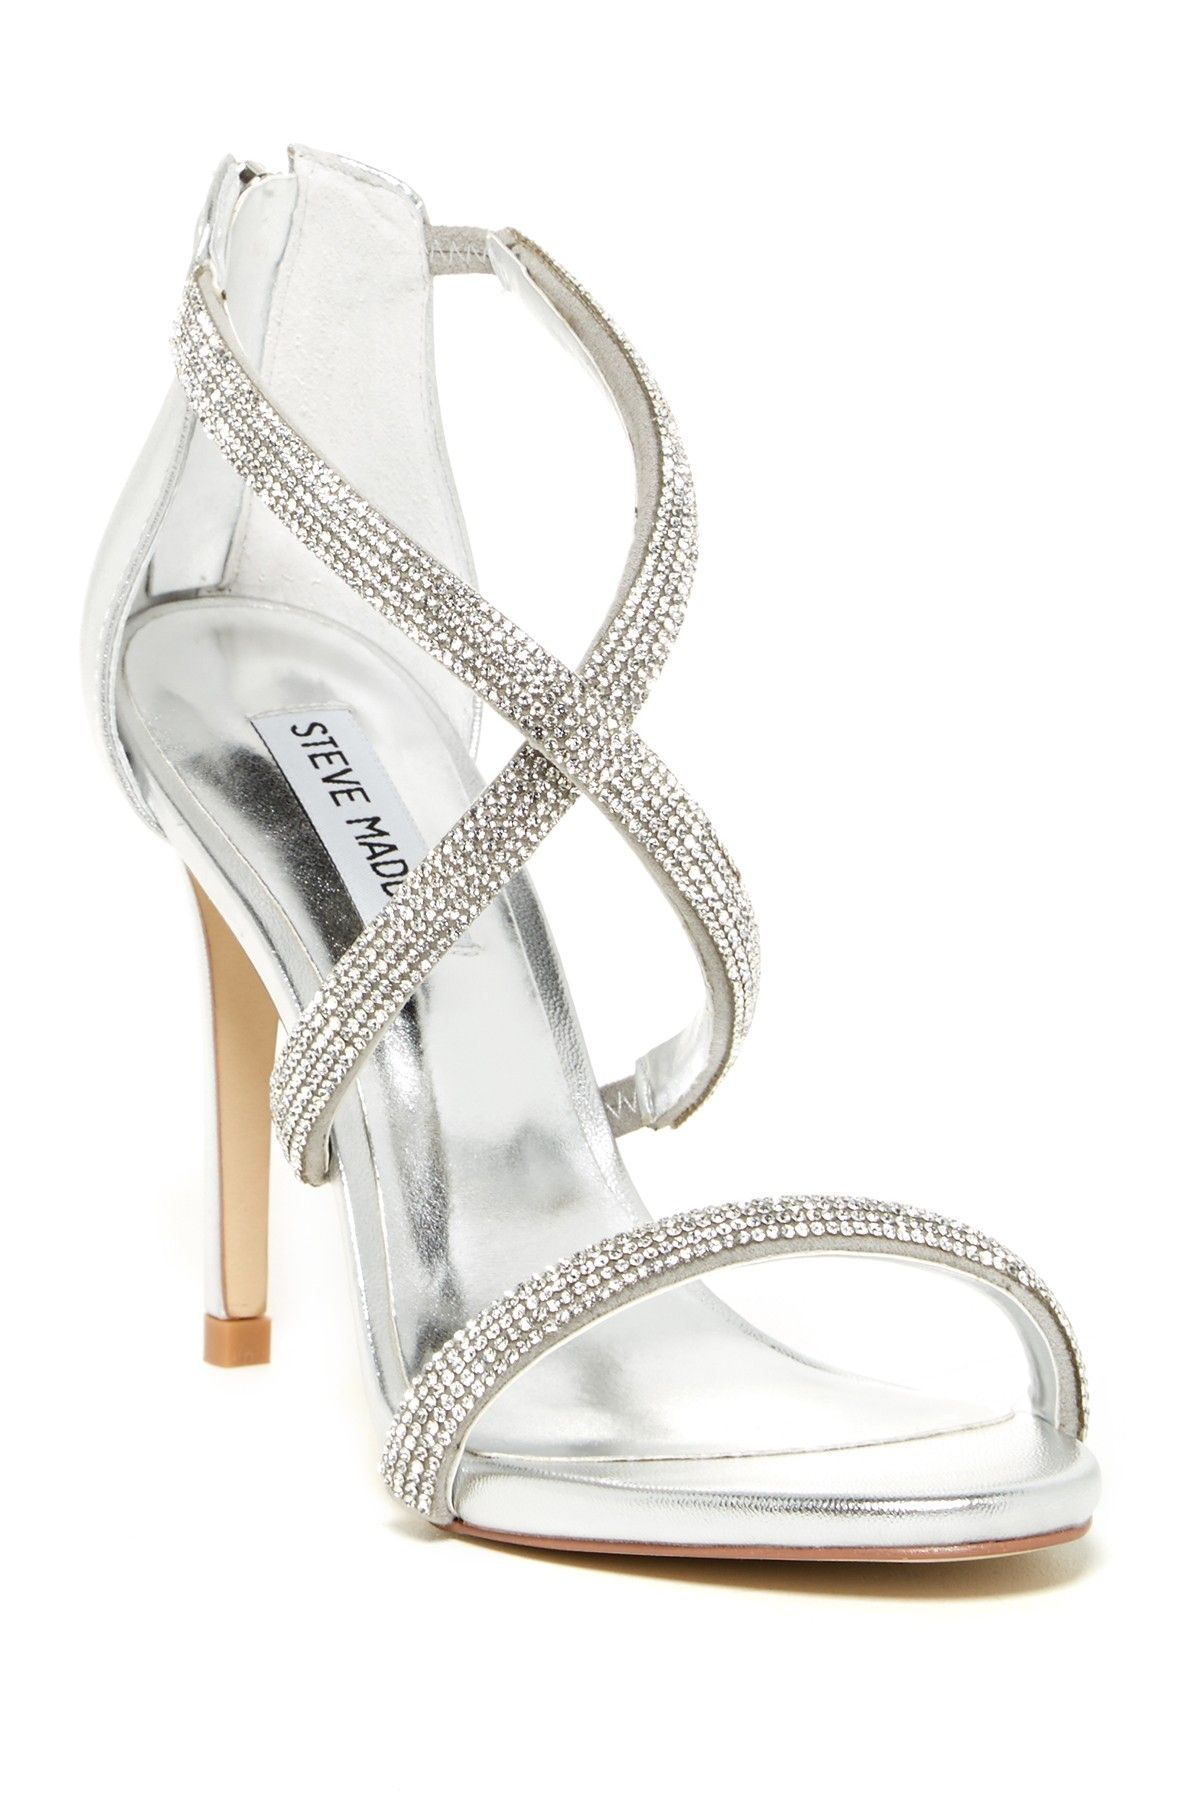 73e595601580 Rhinestone Strappy Sandal - Sponsored by Nordstrom Rack.